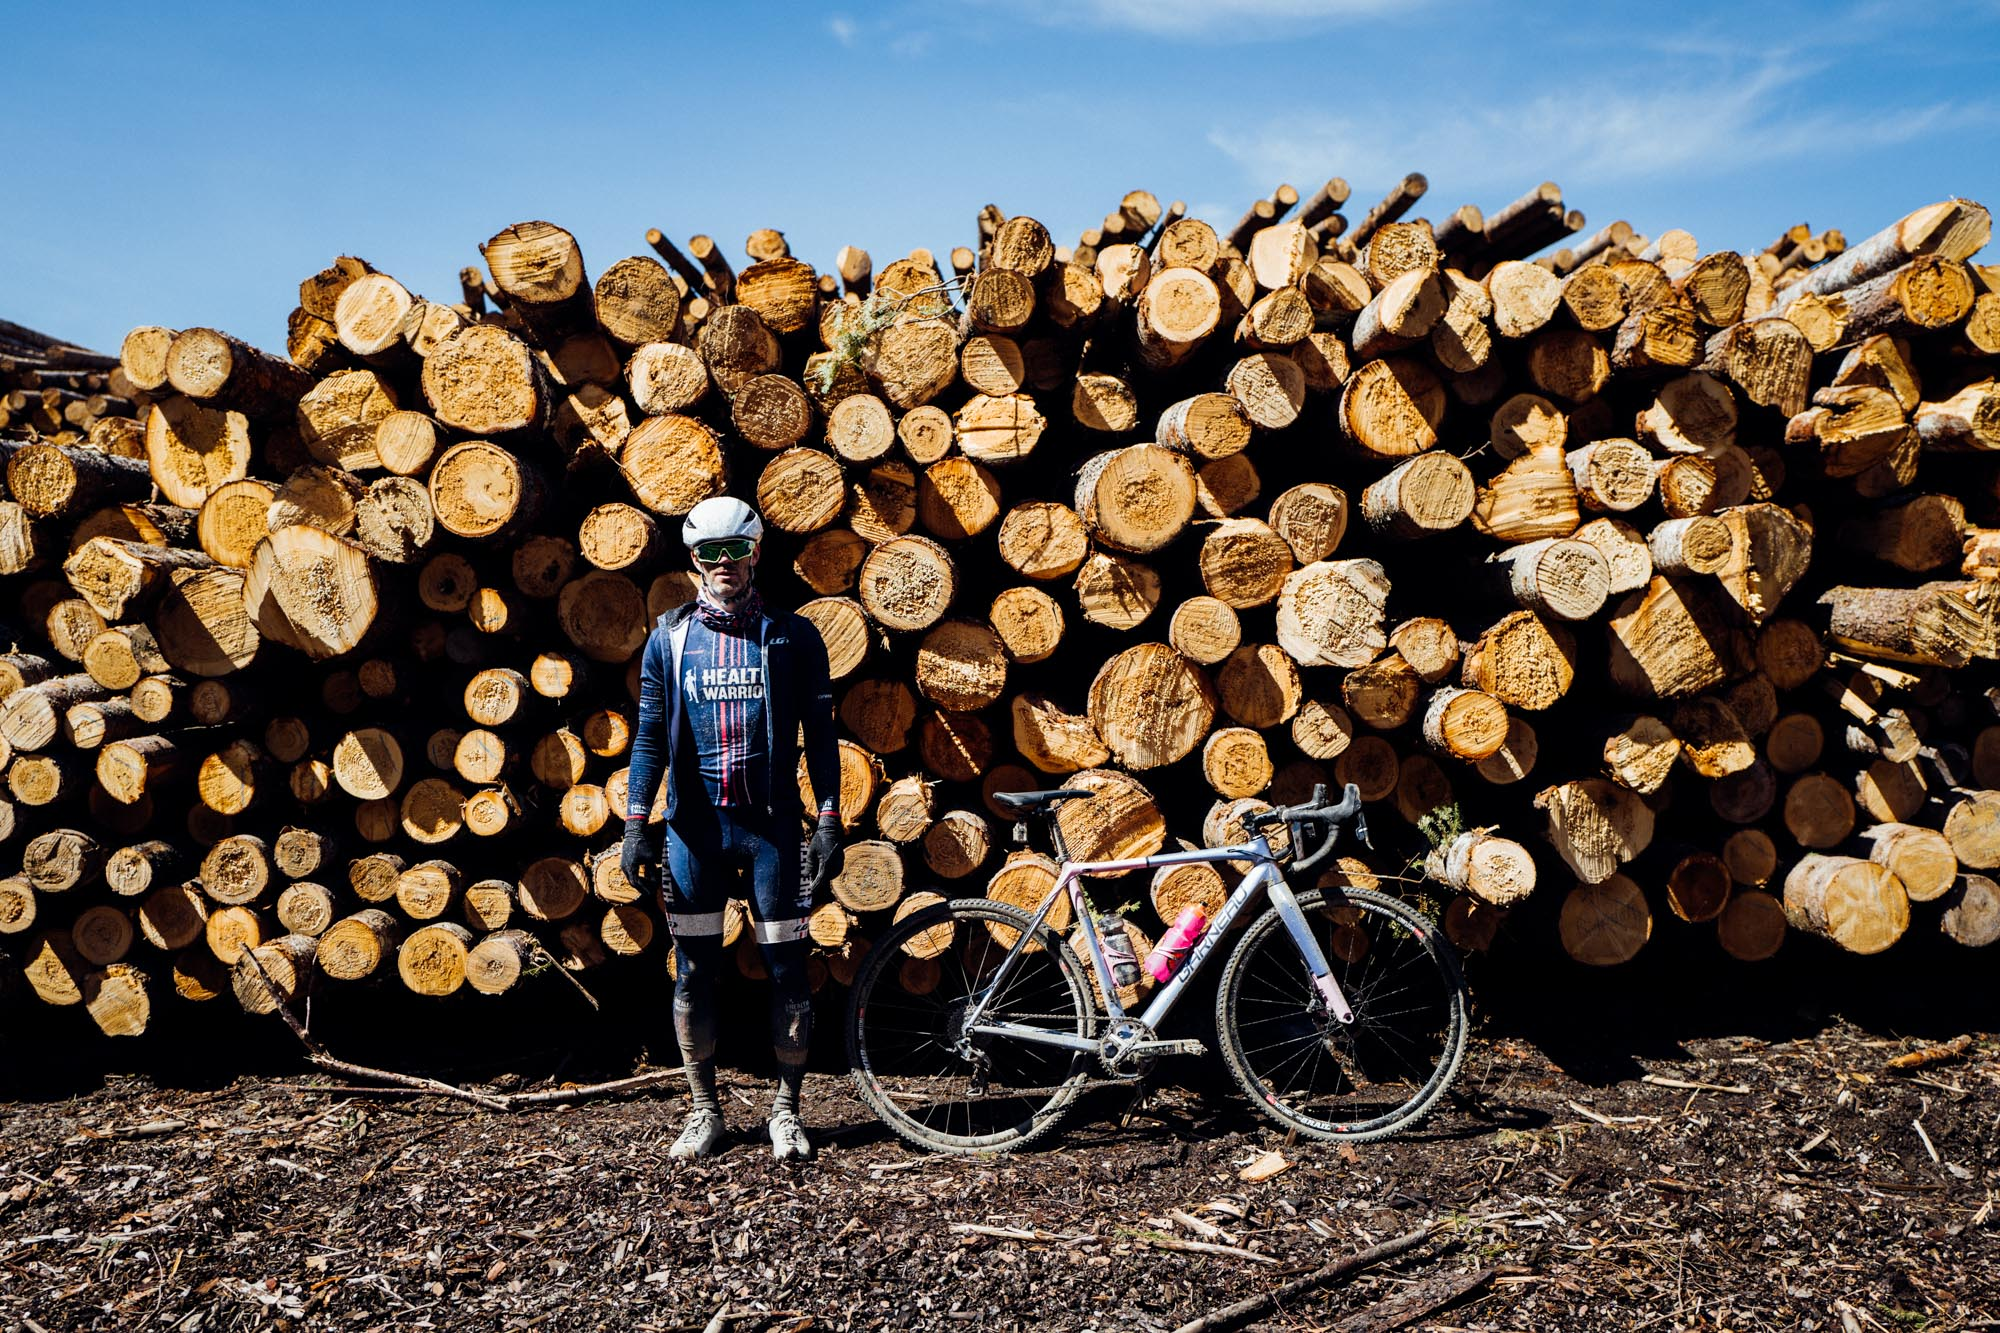 """Roger Parmelee at the  2016 edition of Rasputitsa  in what was the team's initial foray into gravel grinding. It was such an incredible experience that we went back the following year in significantly greater numbers, a weekend detailed in  """"How the Weekend Was Won: Rasputitsa 2017."""""""